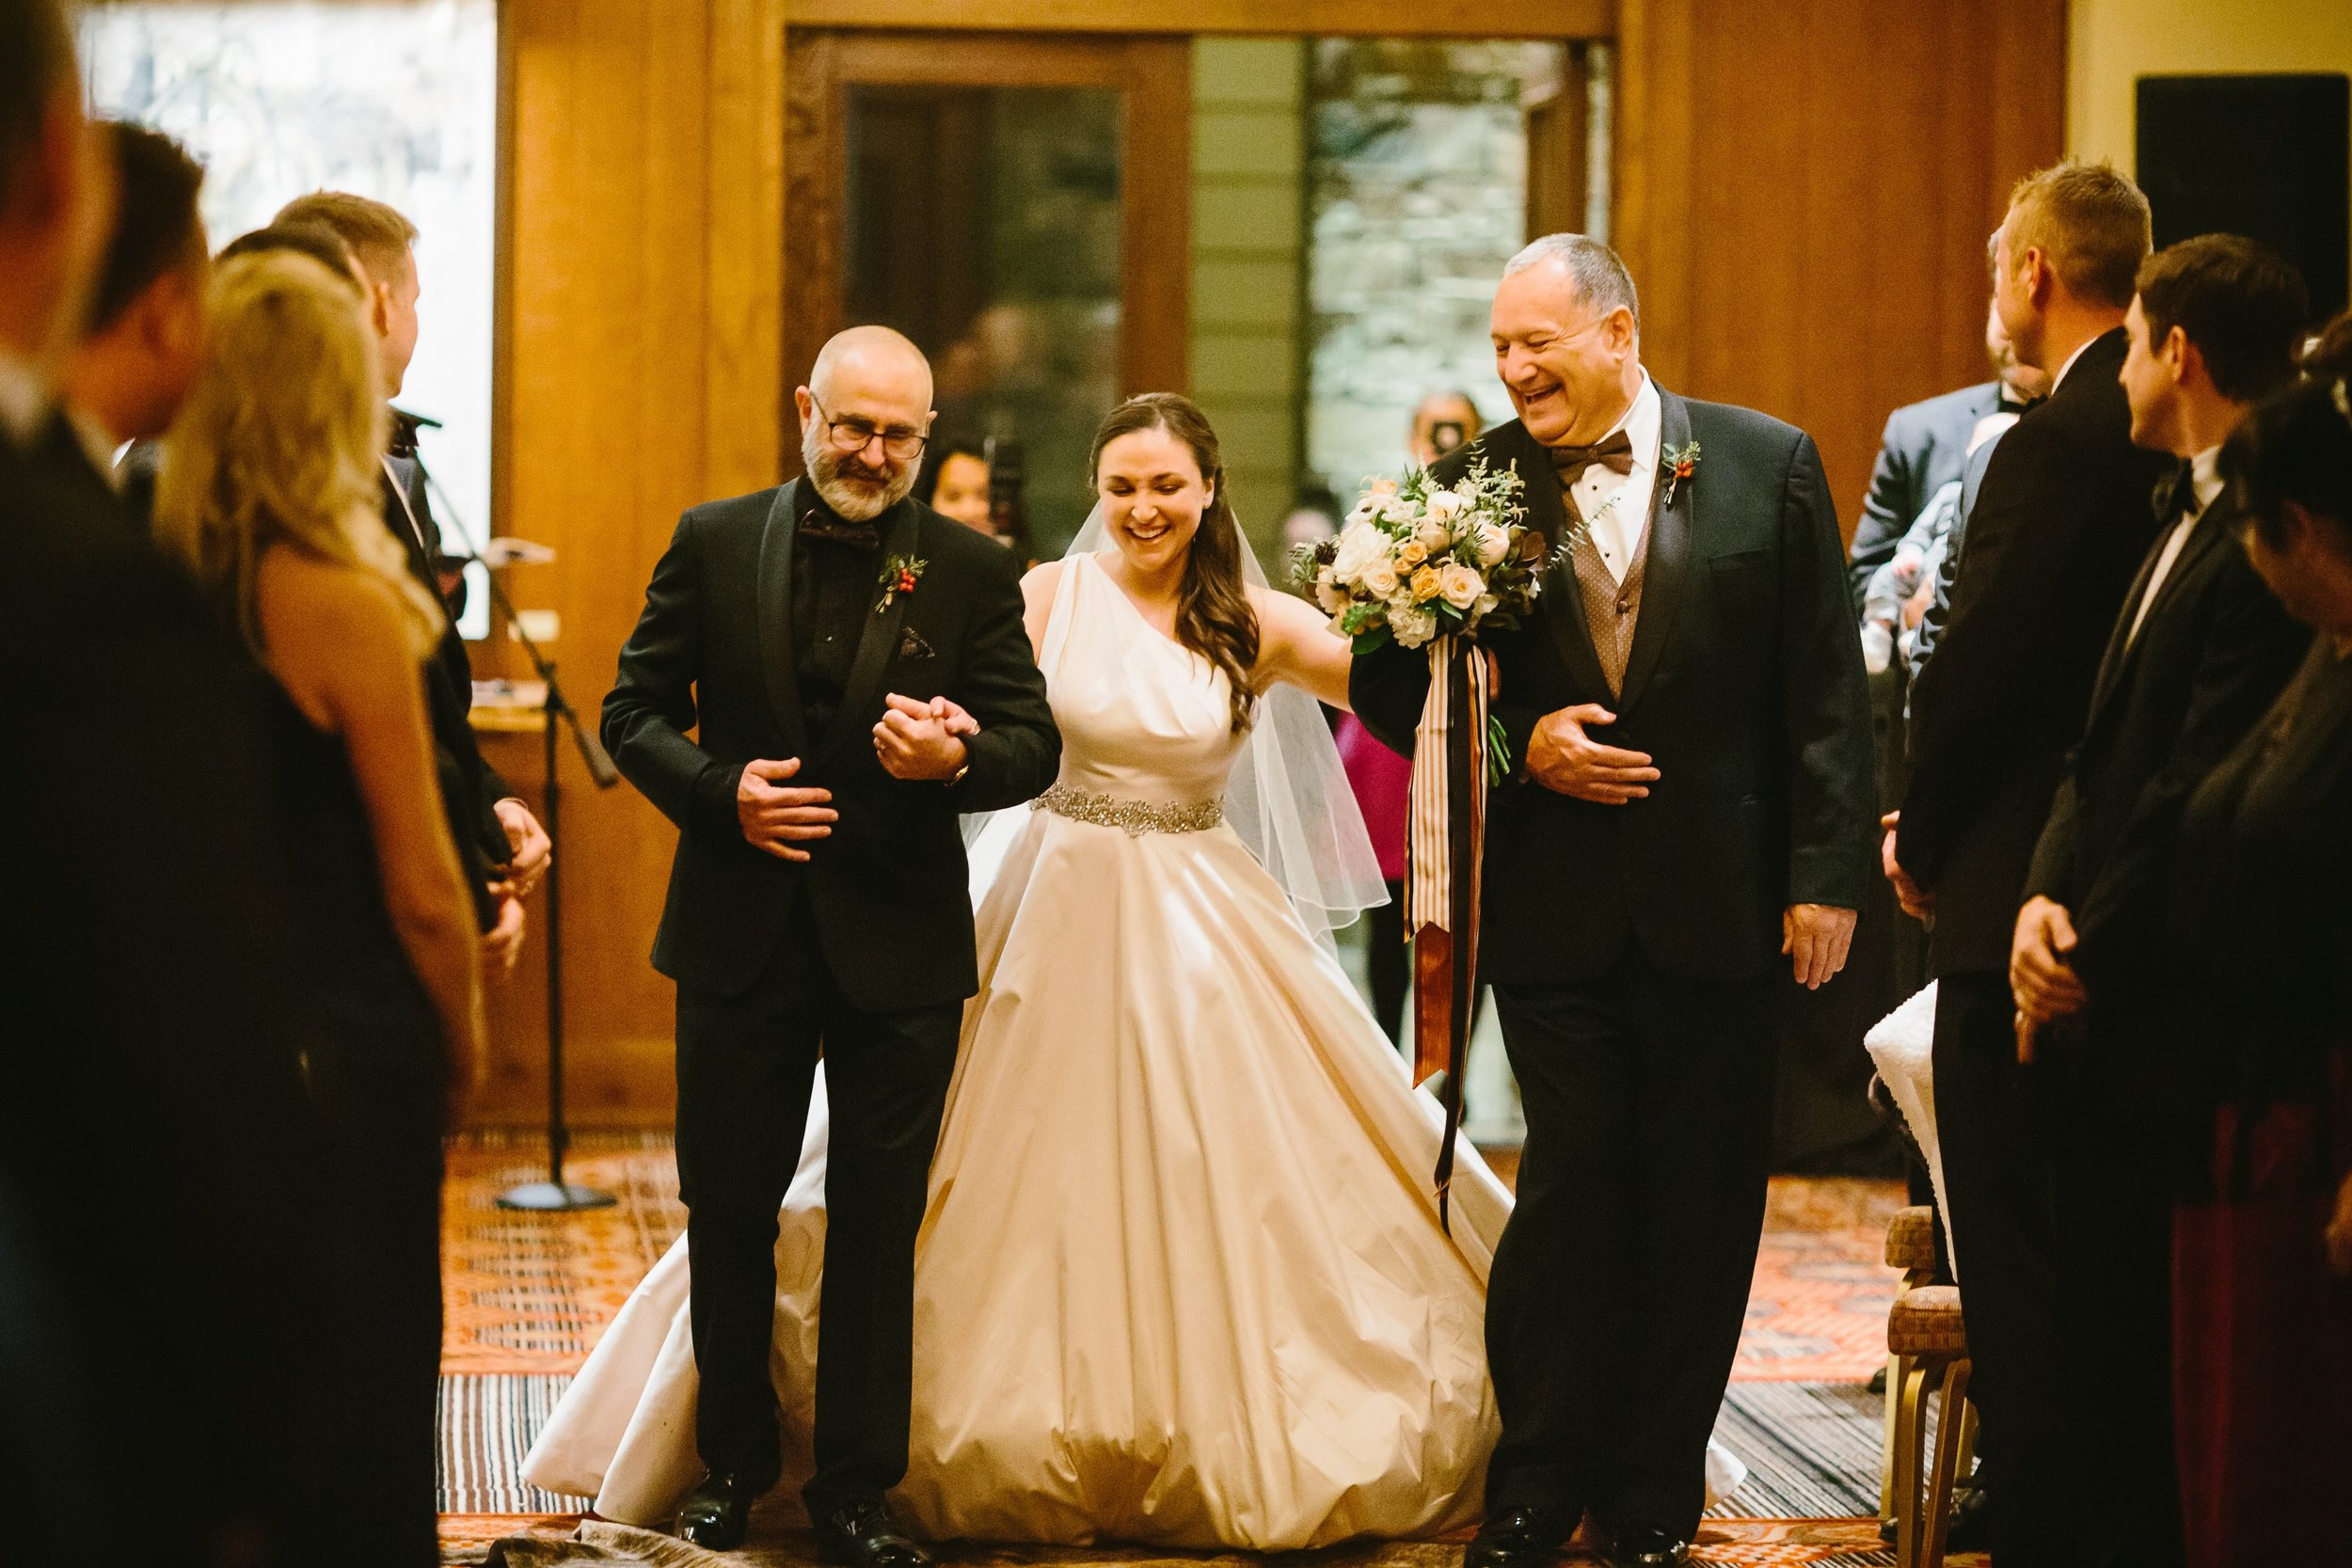 35 Tanya walked down the aisle with both her father and stepfather